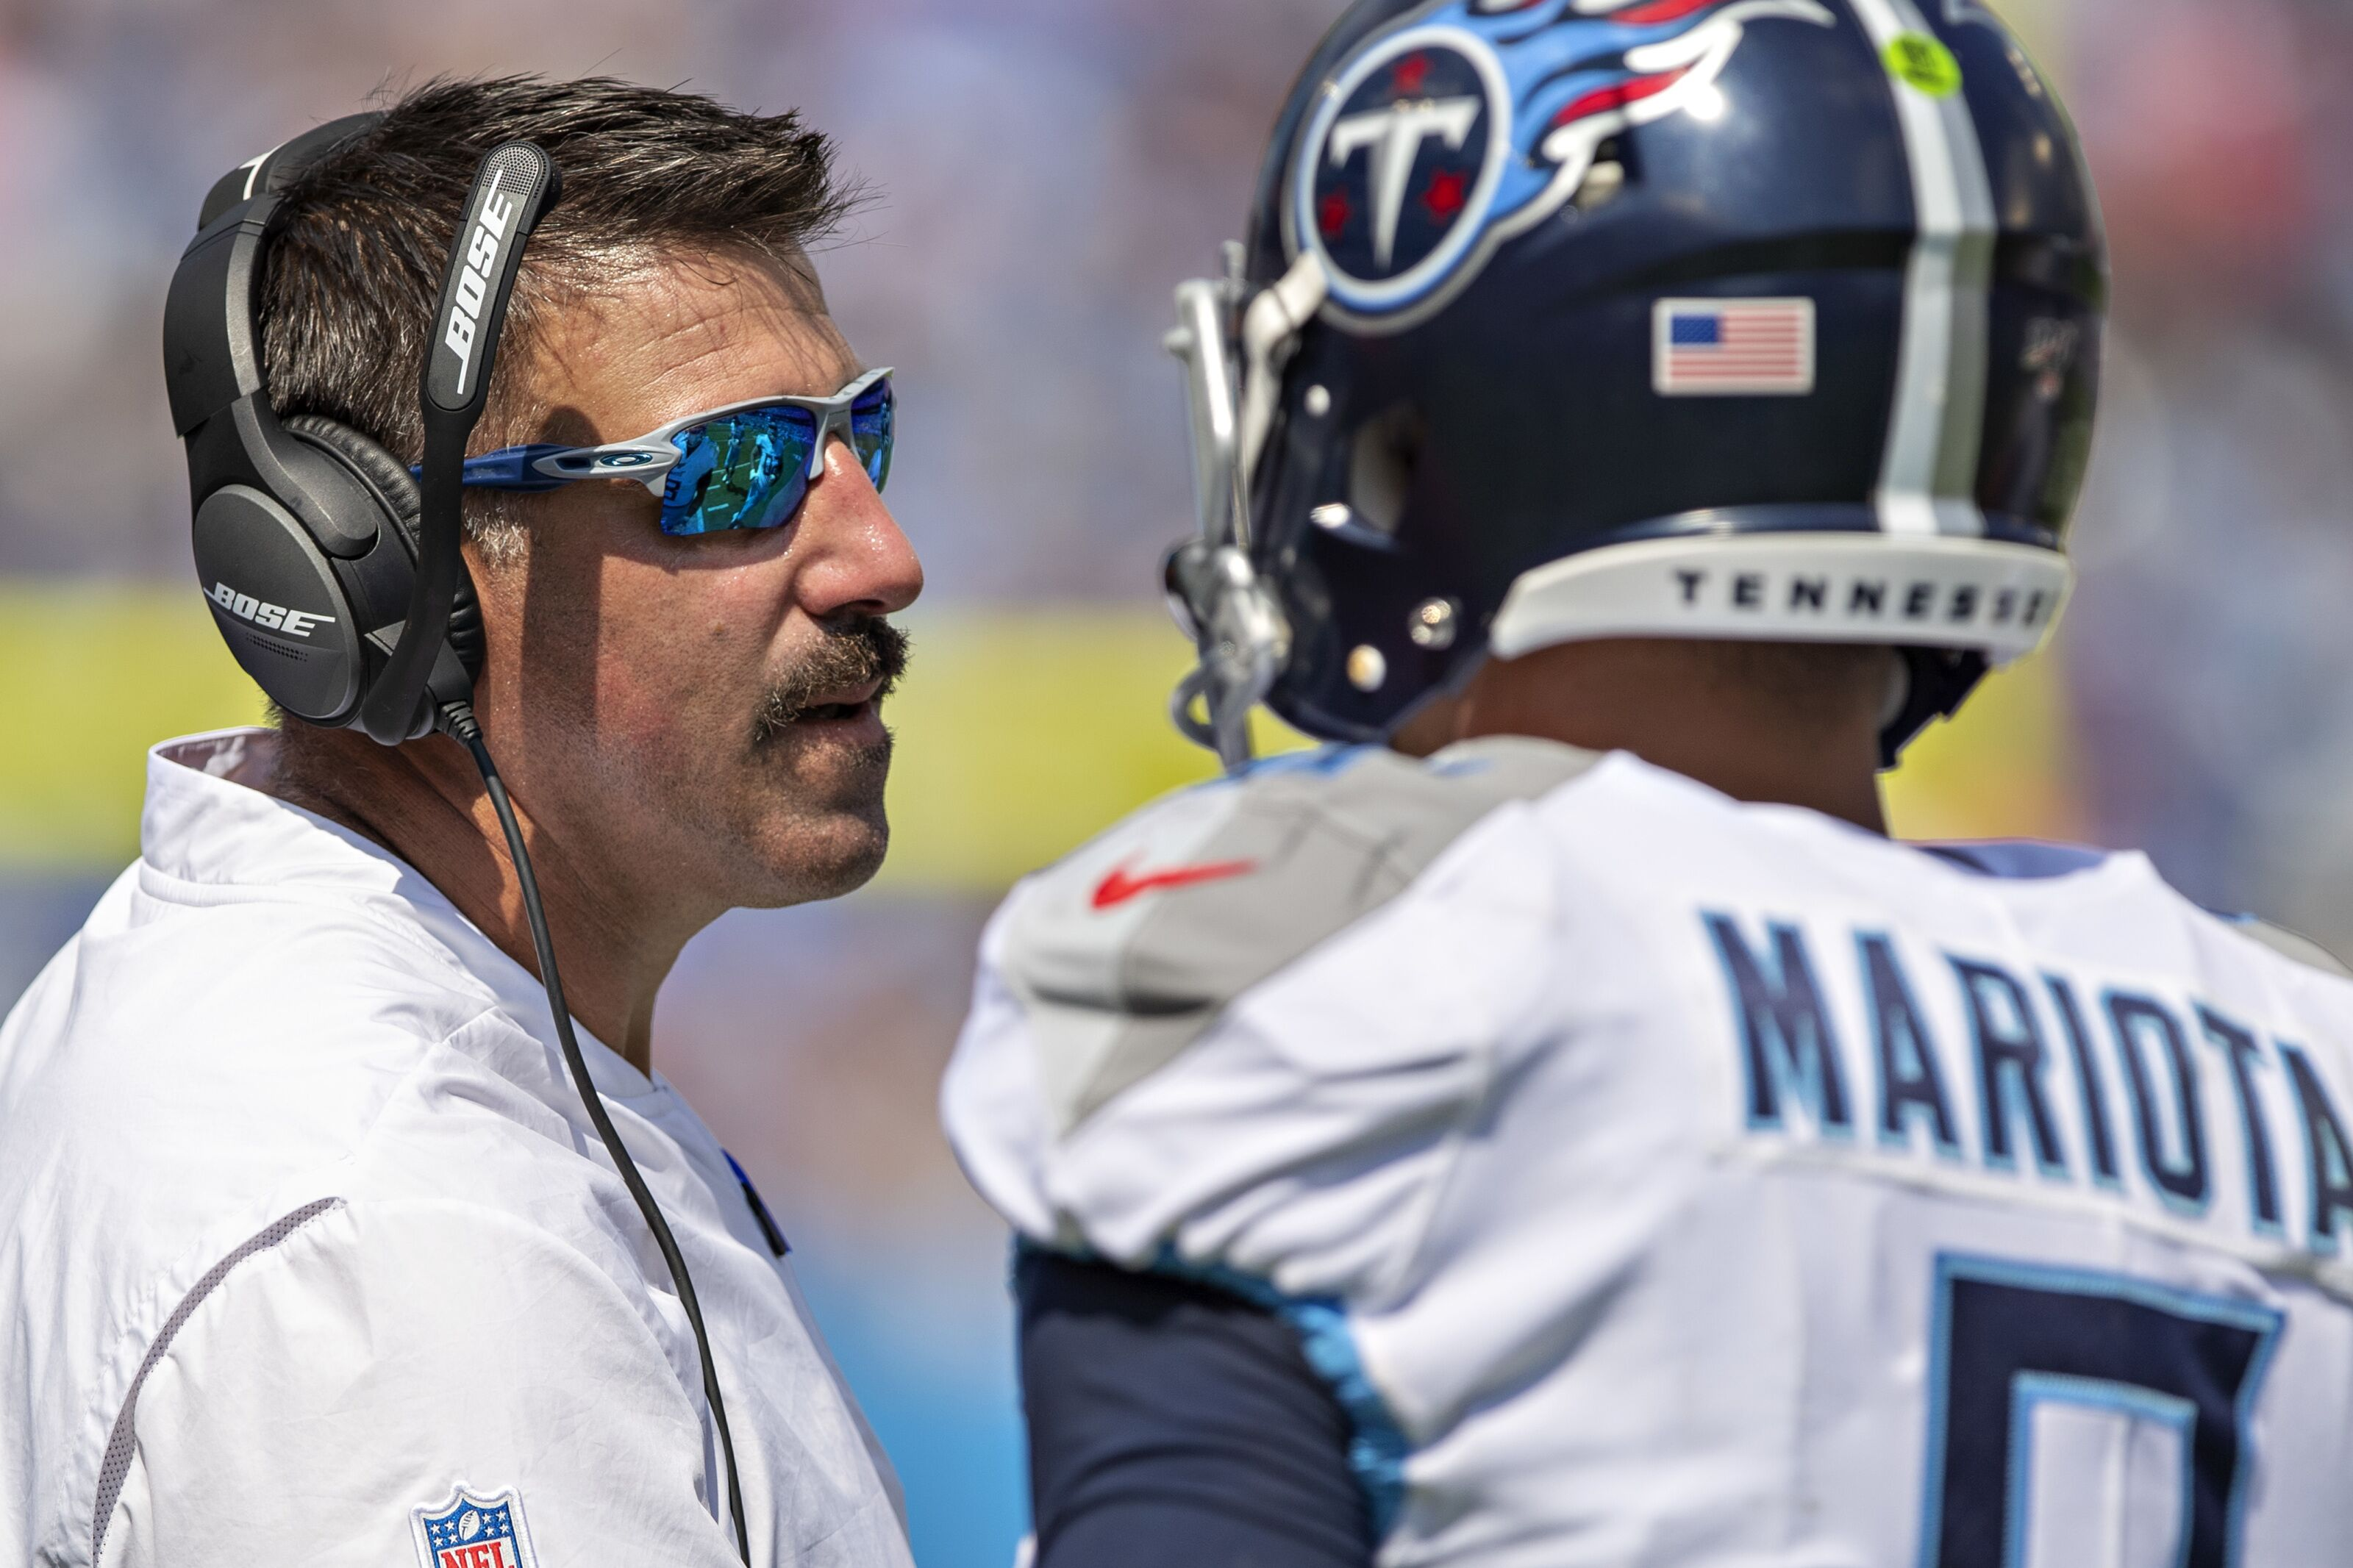 Tennessee Titans: Mike Vrabel praises Marcus Mariota for his leadership